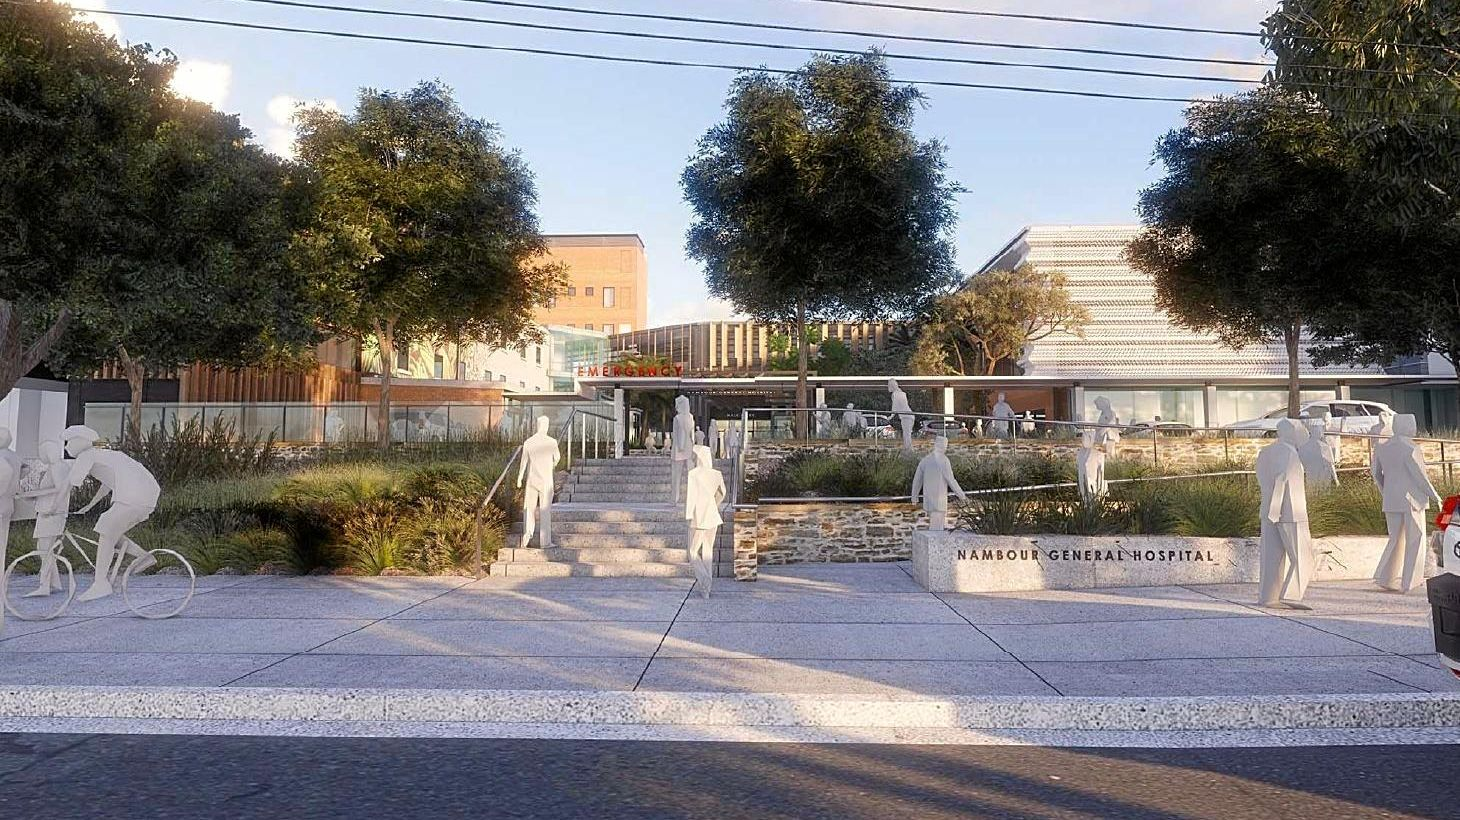 SERVICES UPGRADE: The final designs are being completed before the Nambour Hospital redevelopment begins in the third quarter of 2019. Pictured is an artist's render from Hospital Rd.